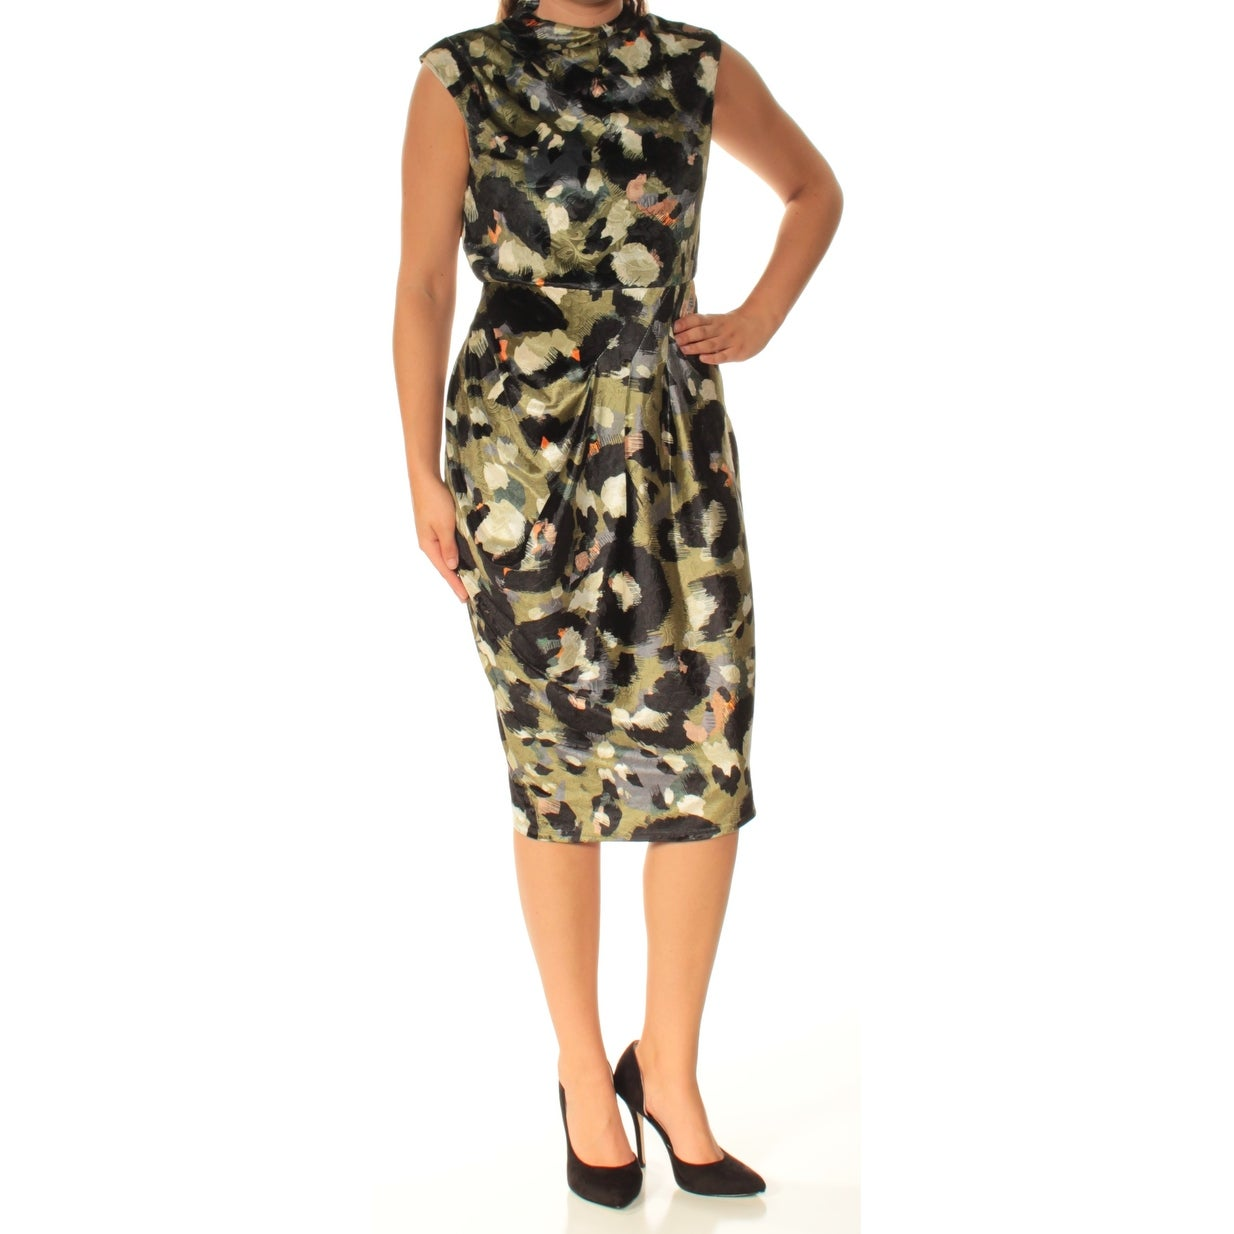 42818047 Catherine Malandrino Dresses   Find Great Women's Clothing Deals Shopping  at Overstock